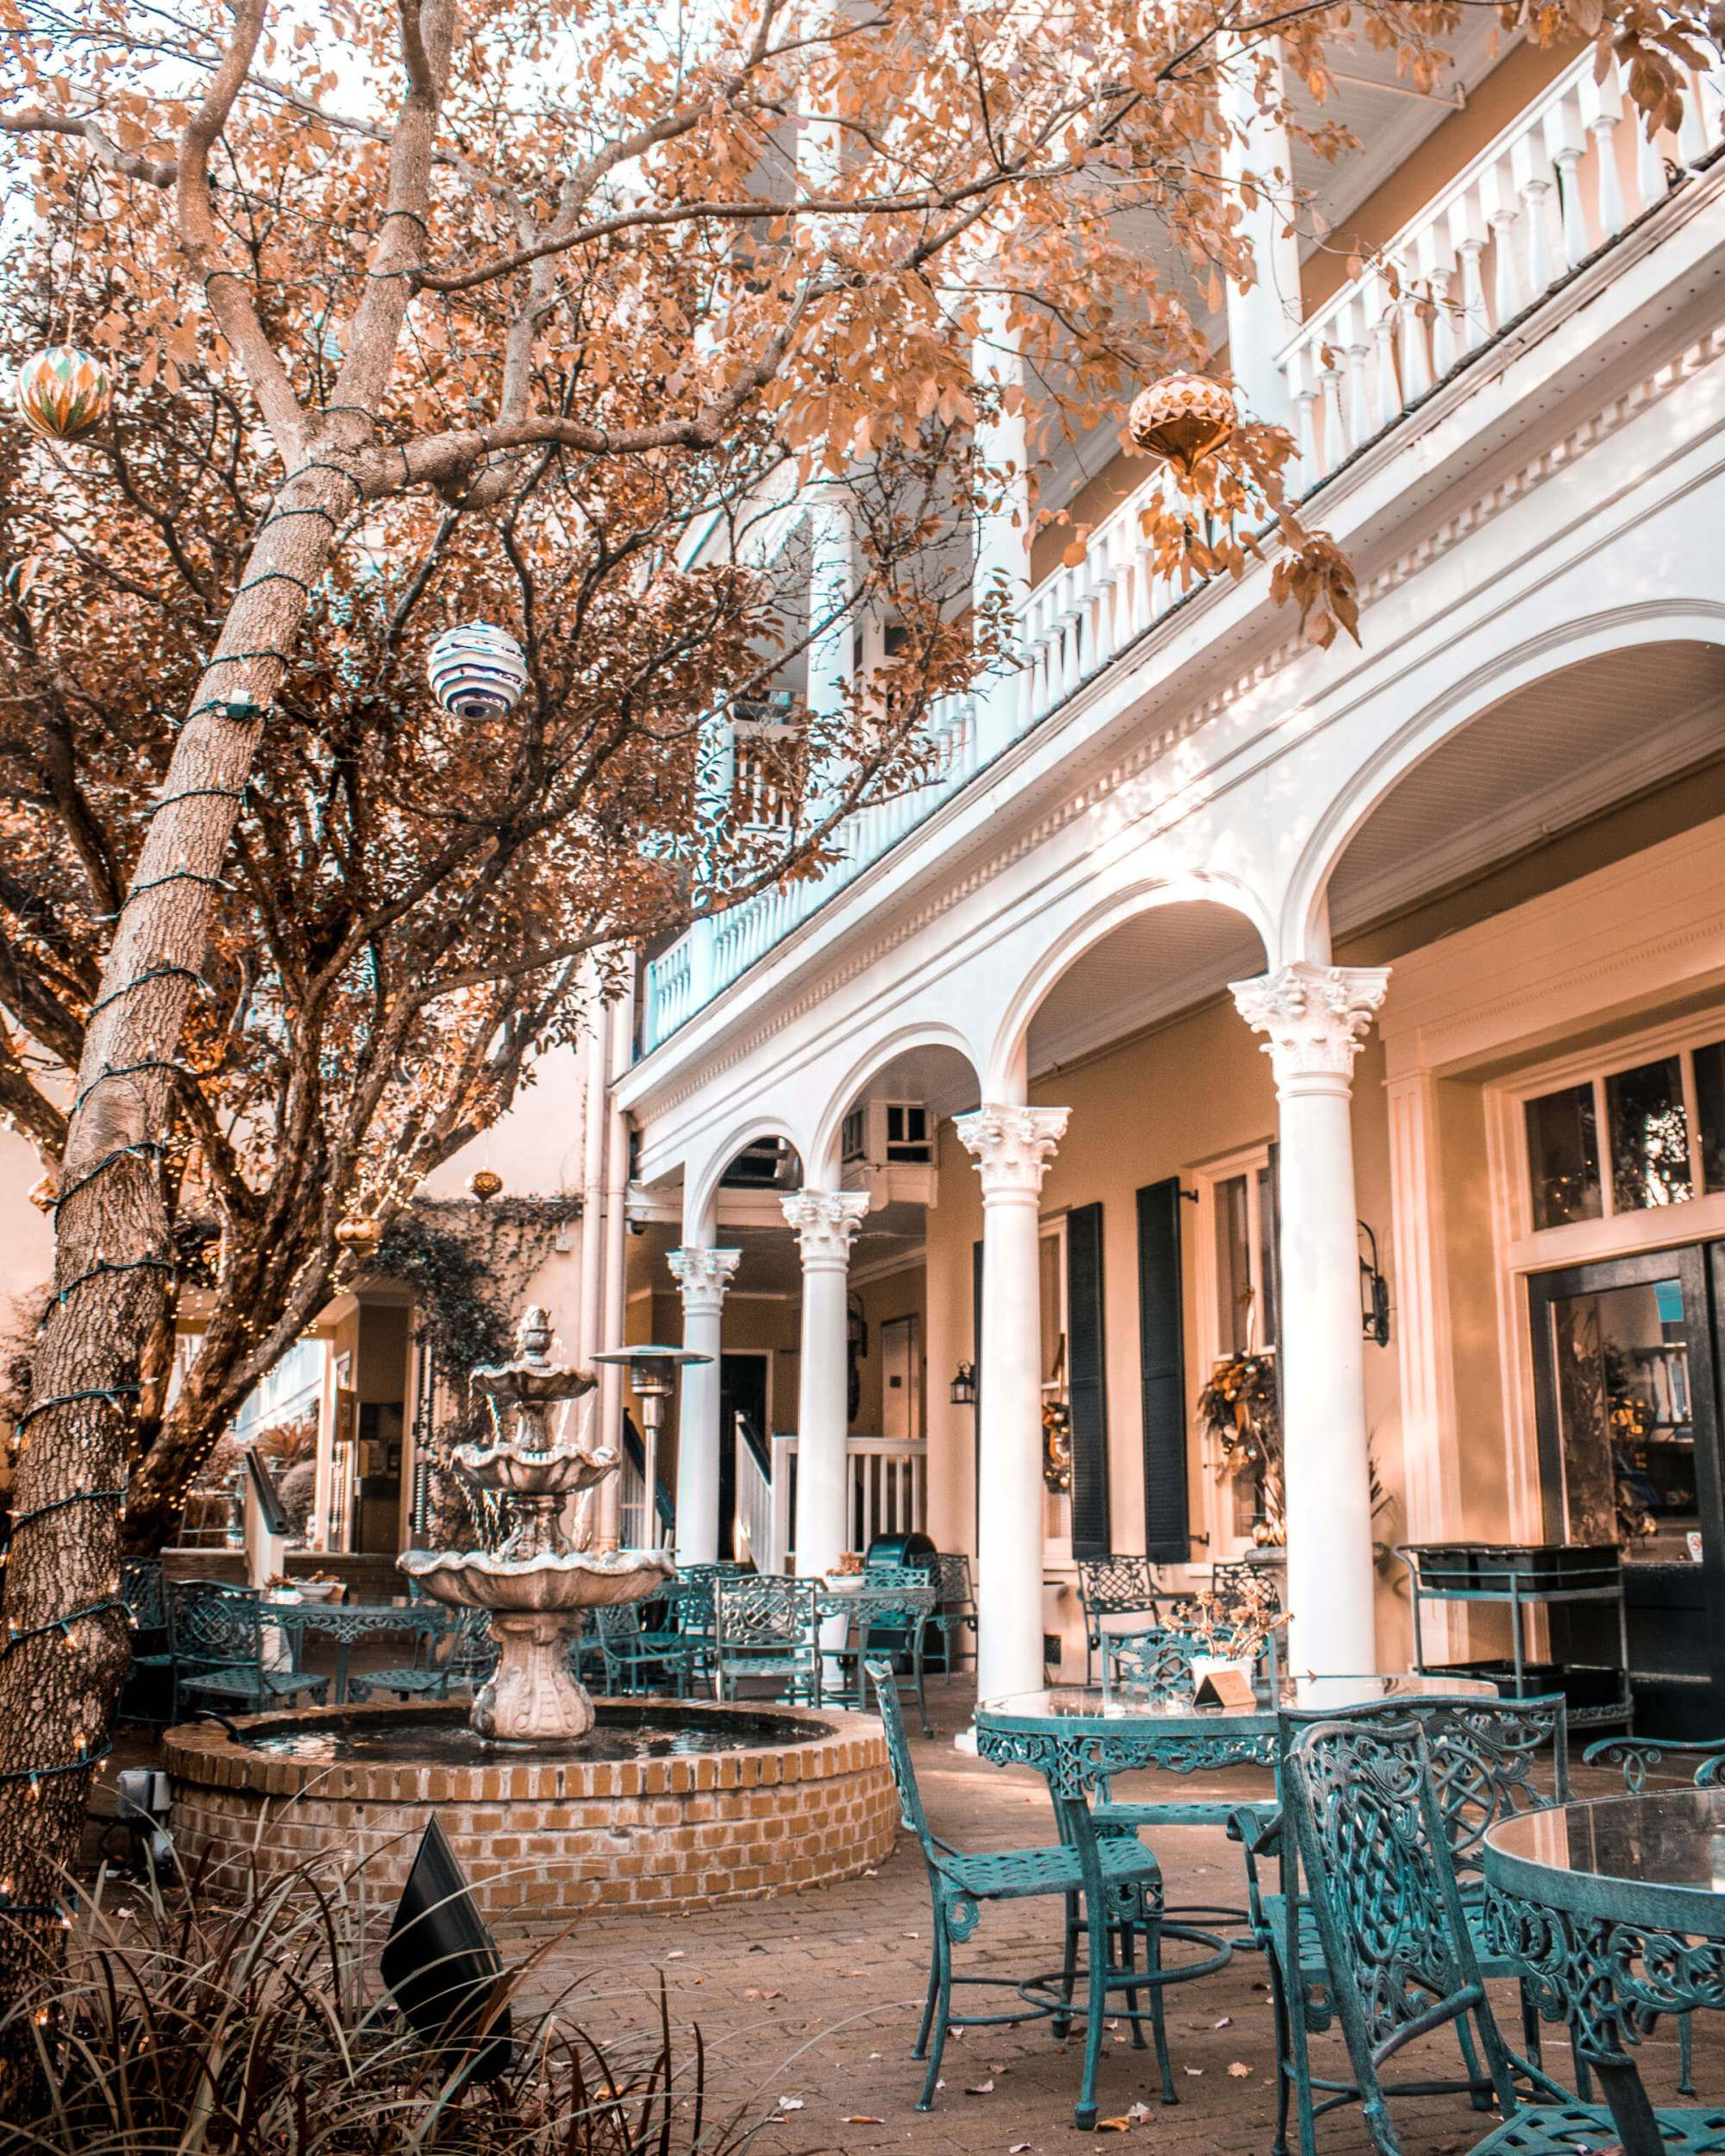 Historic Downtown Charleston Sc: Long Weekend In Charleston SC: Charming Things To Do In 3